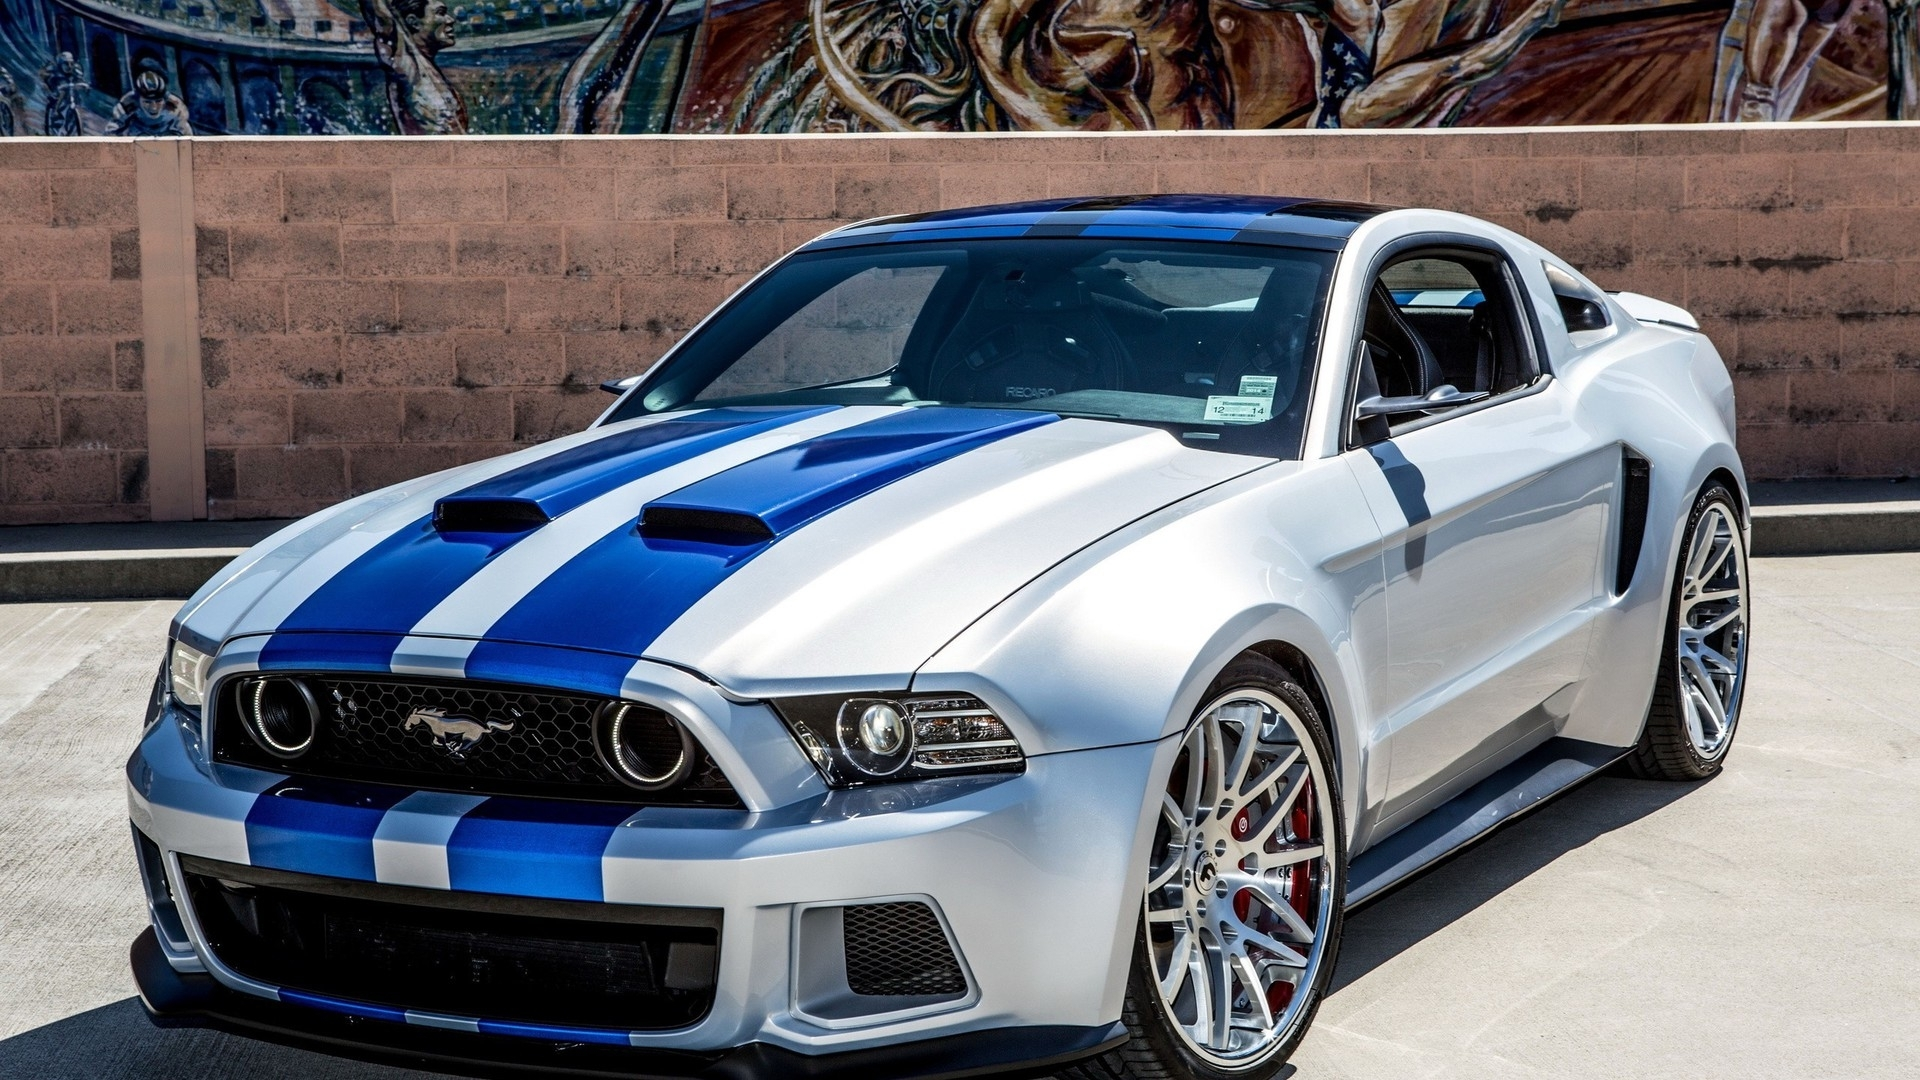 10 New Ford Mustang Hd Wallpapers 1080P FULL HD 1080p For ...